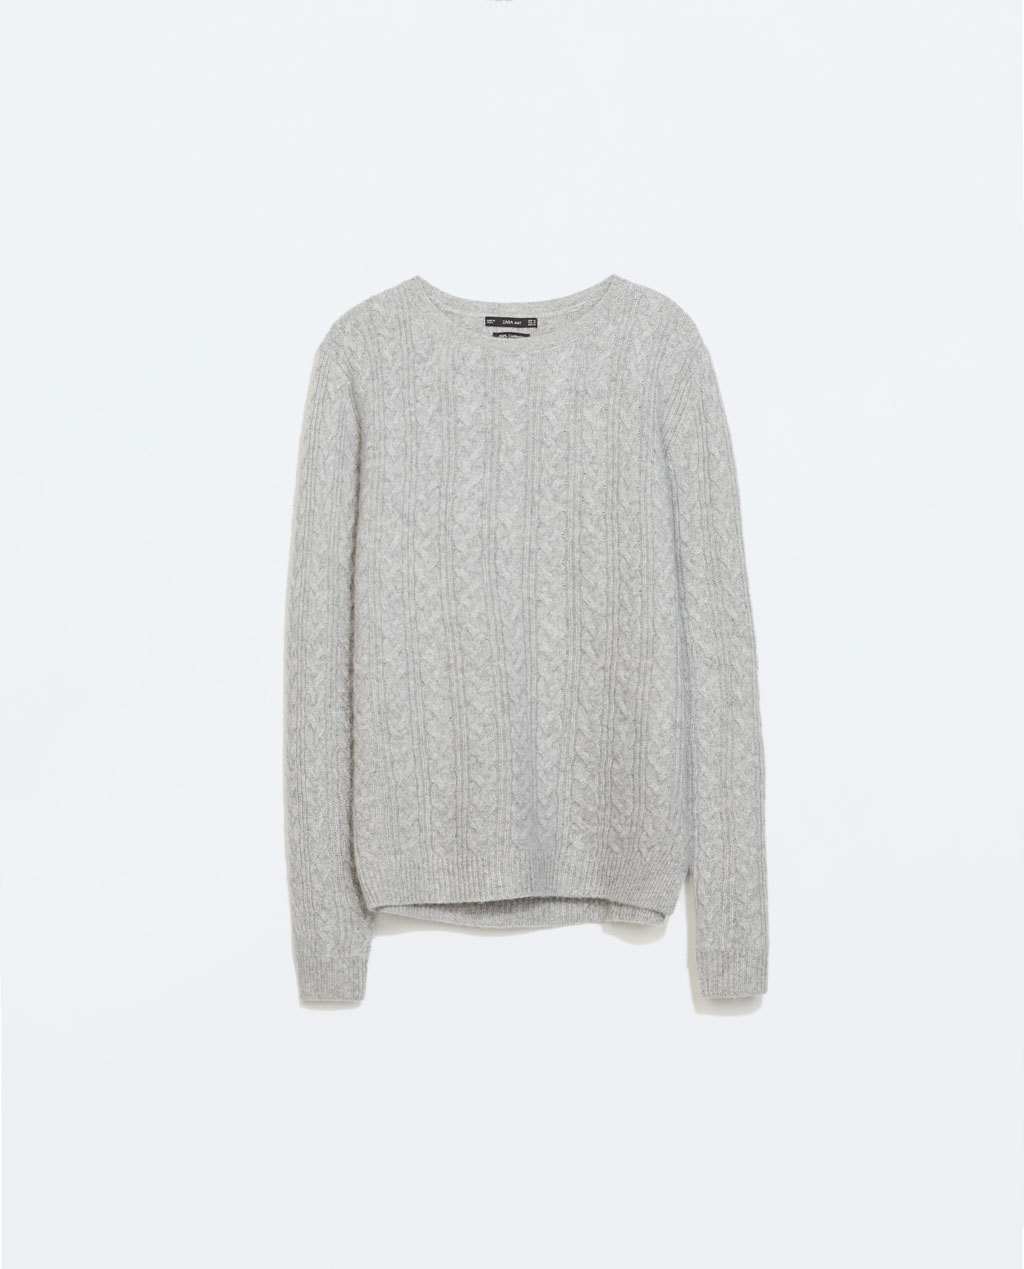 Cableknit Cashmere Sweater - neckline: round neck; style: standard; pattern: cable knit; predominant colour: light grey; occasions: casual, creative work; length: standard; fit: standard fit; fibres: cashmere - 100%; sleeve length: long sleeve; sleeve style: standard; texture group: knits/crochet; pattern type: knitted - fine stitch; season: a/w 2014